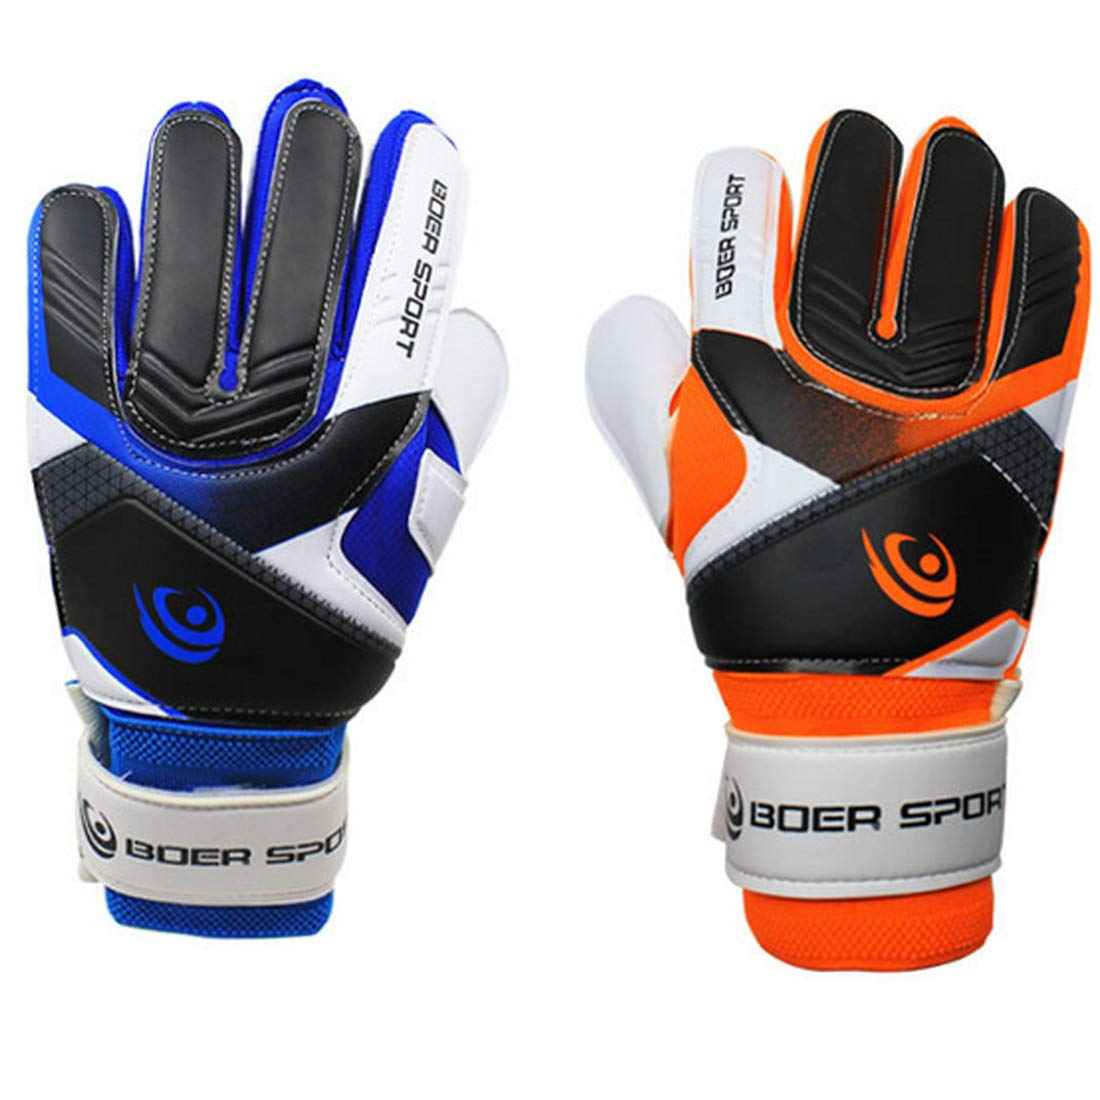 Find-In-Find Youth Adult Football Soccer Goalkeeper Goalie Training Gloves Strong Grip Finger Protection 7-9 Size